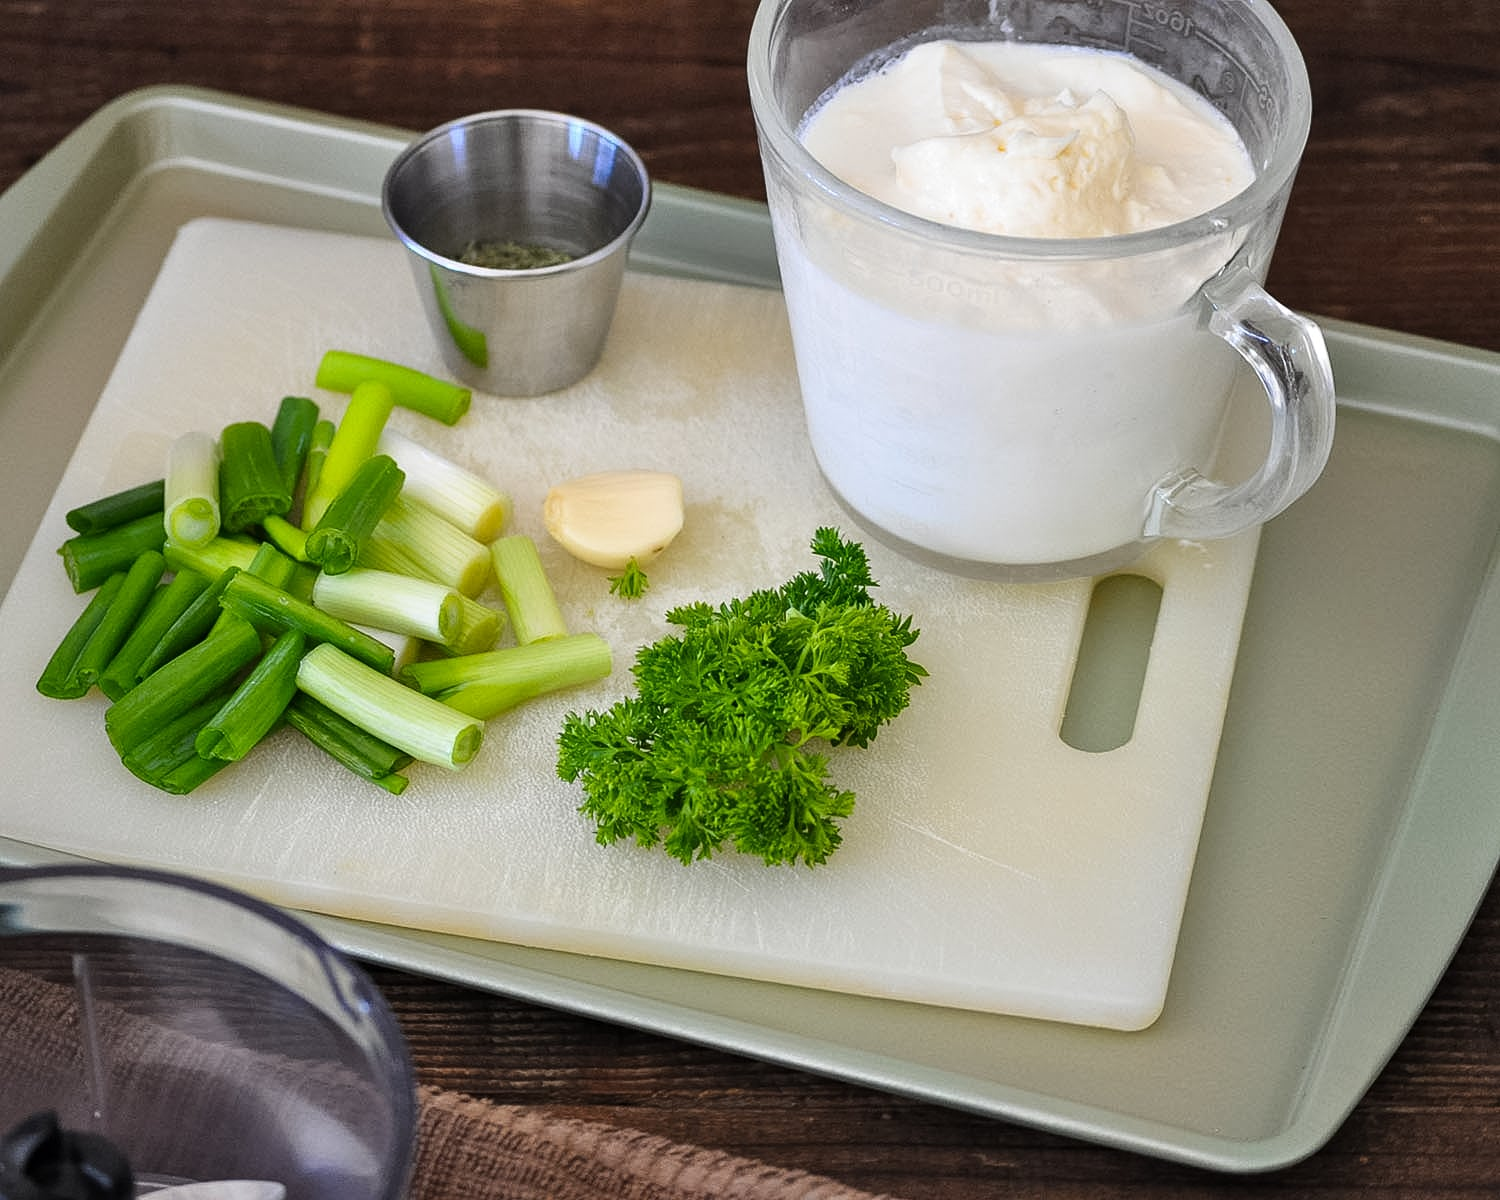 chopped green onions and fresh parsley on a white cutting board next to a measuring cup of mayo and milk